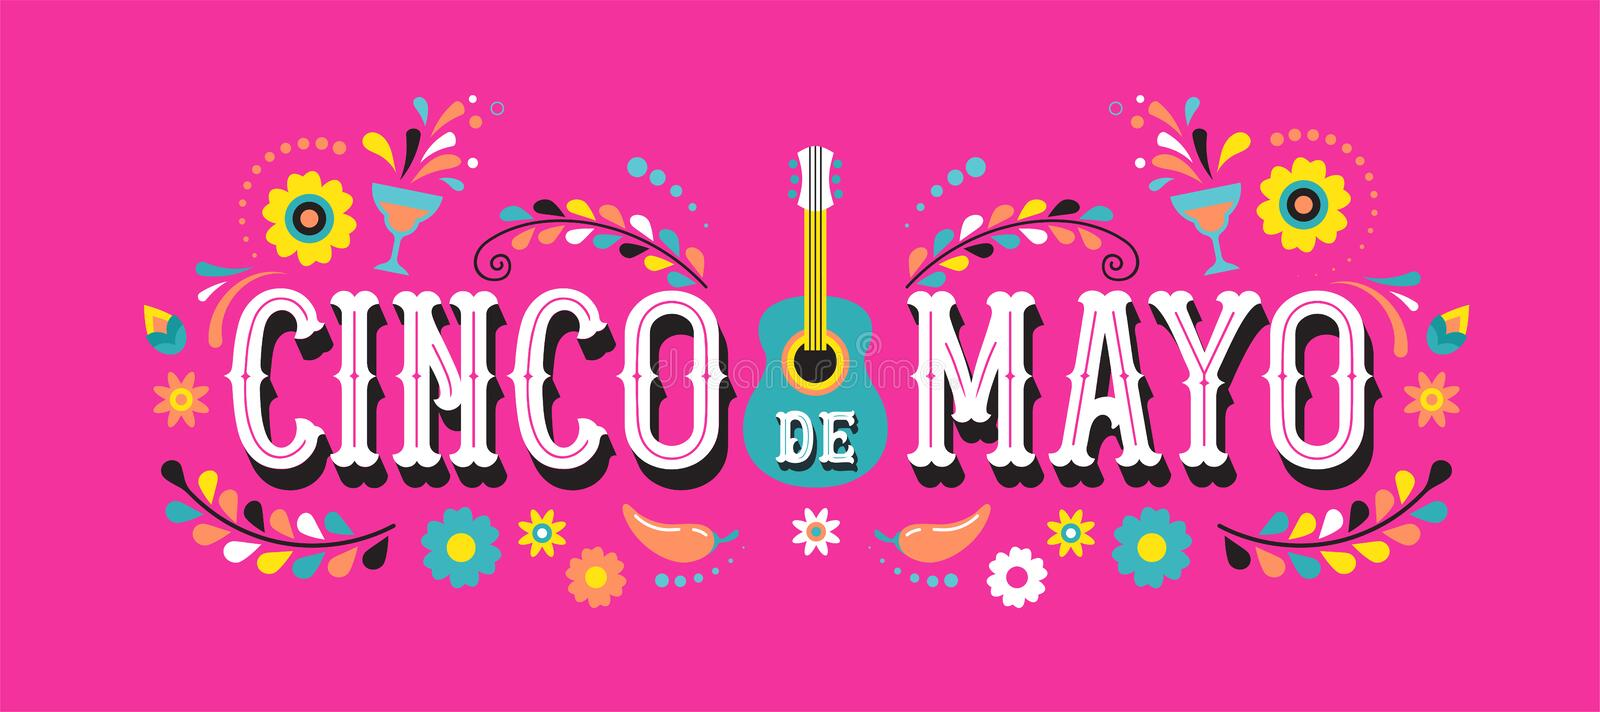 Cinco de Mayo - May 5, federal holiday in Mexico. Fiesta banner and poster design with flags. Flowers, decorations royalty free illustration